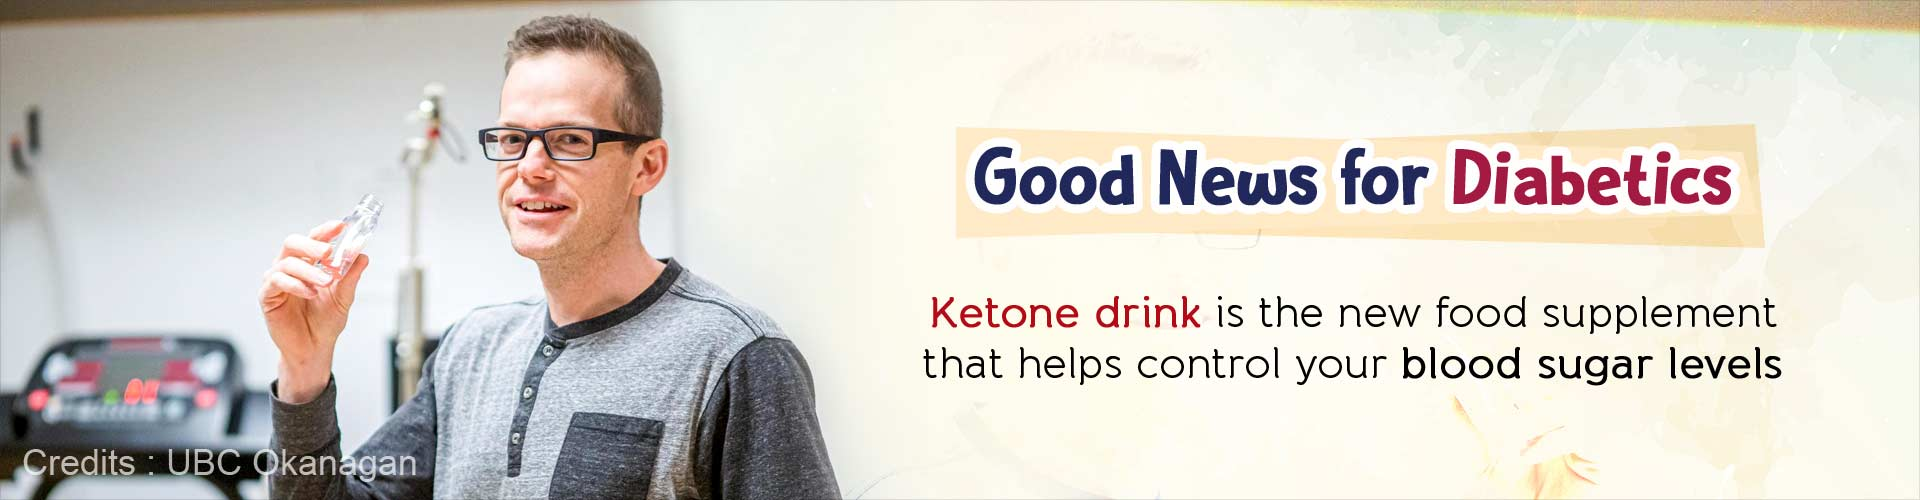 Good news for diabetics. Ketone drink is the new food supplement that helps control your blood sugar levels.